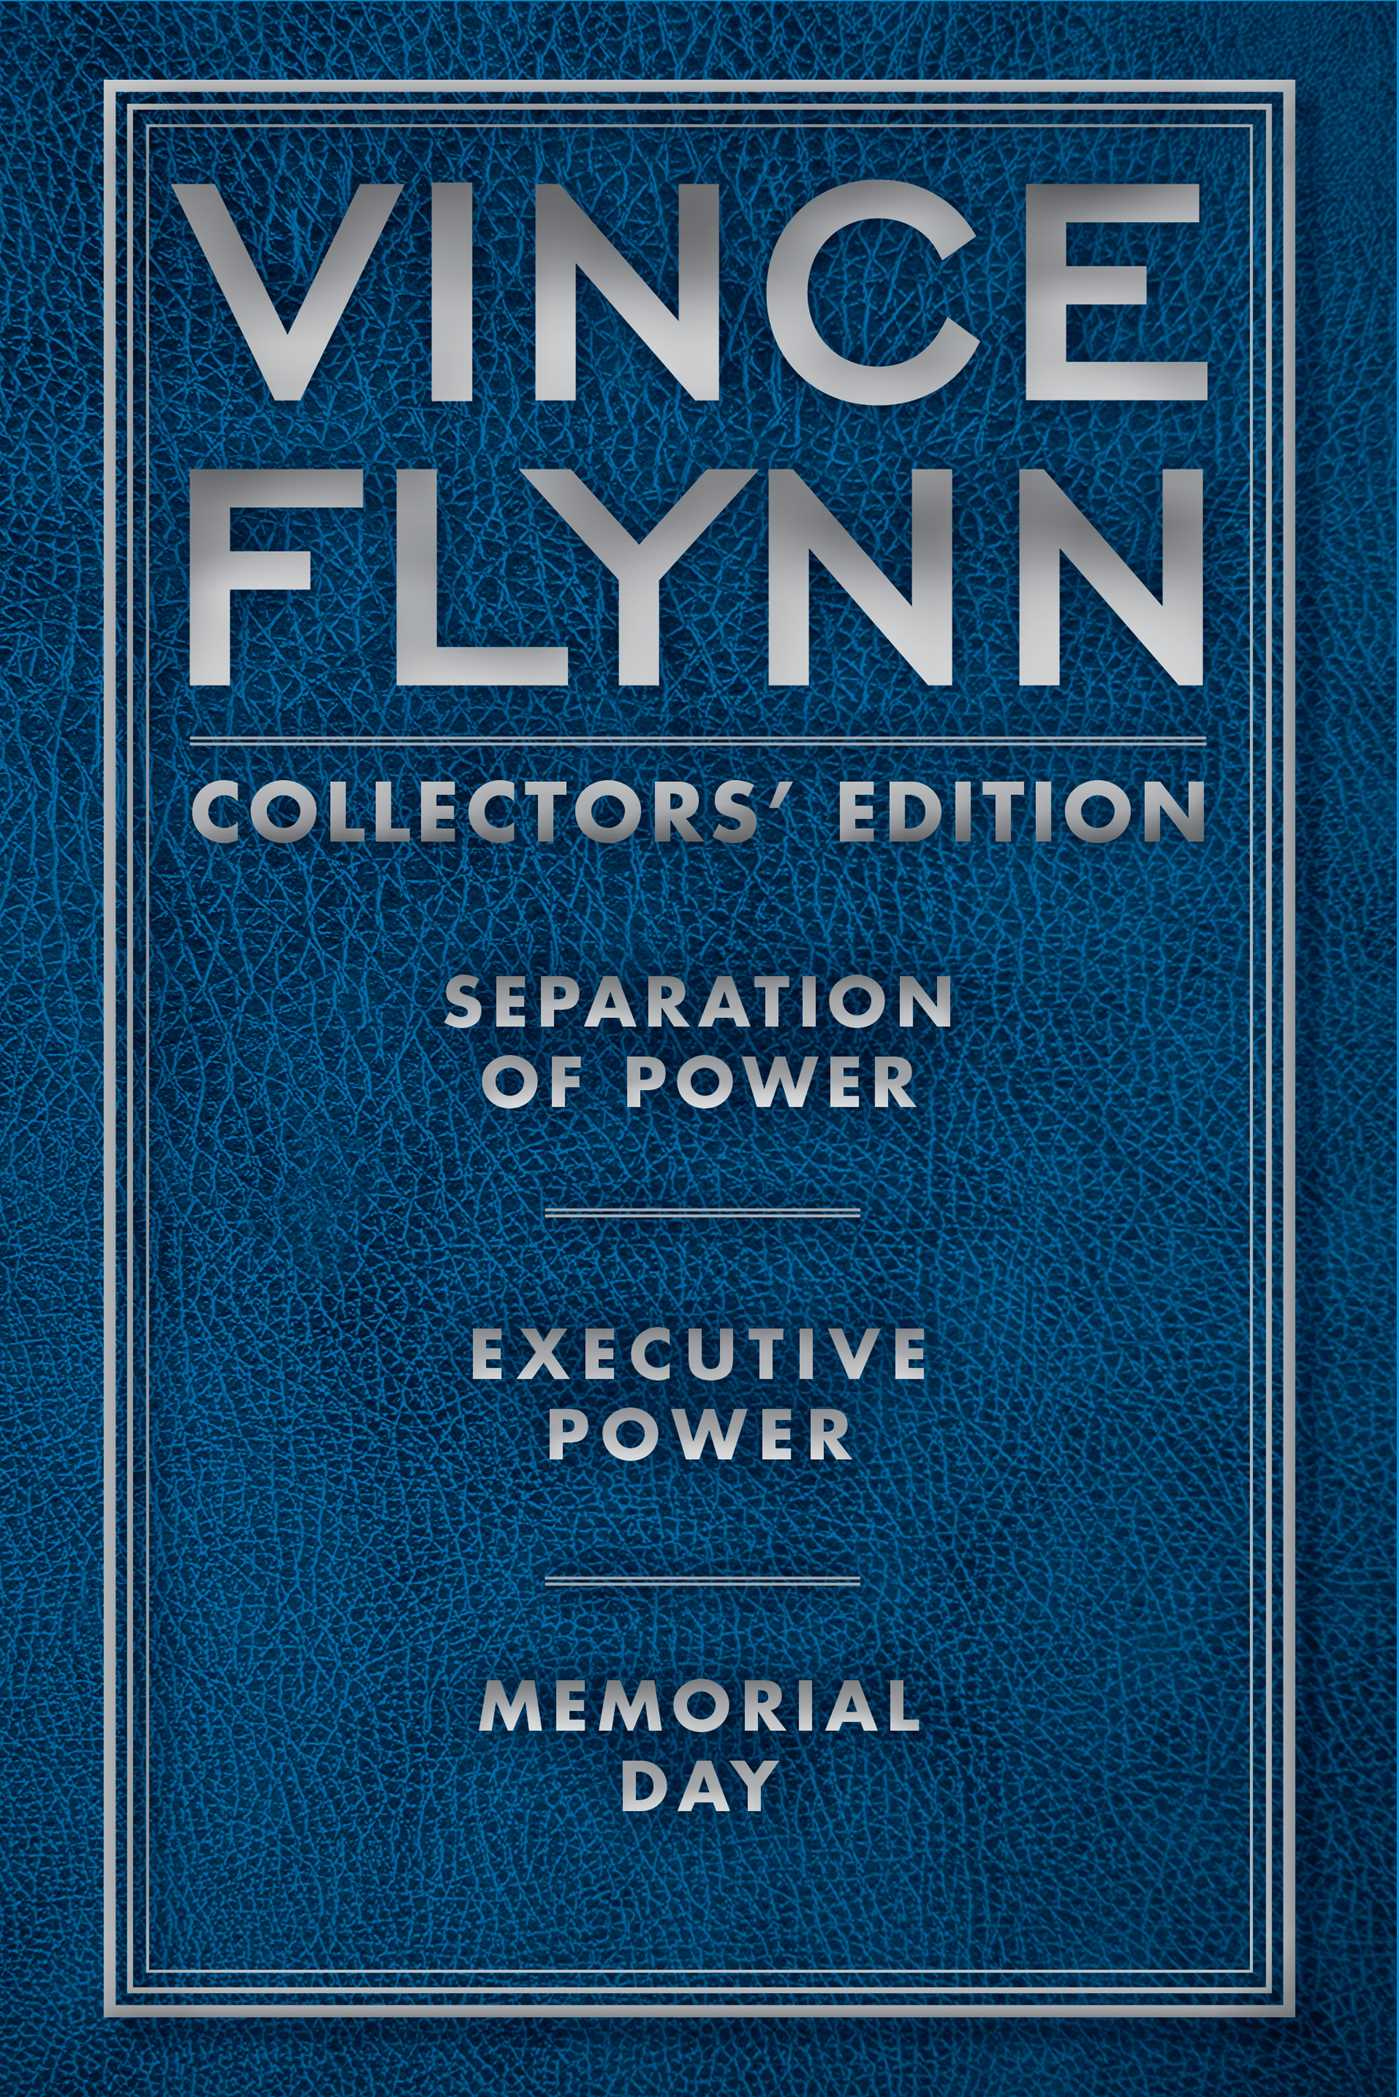 Vince flynn collectors edition 2 9781451639483 hr